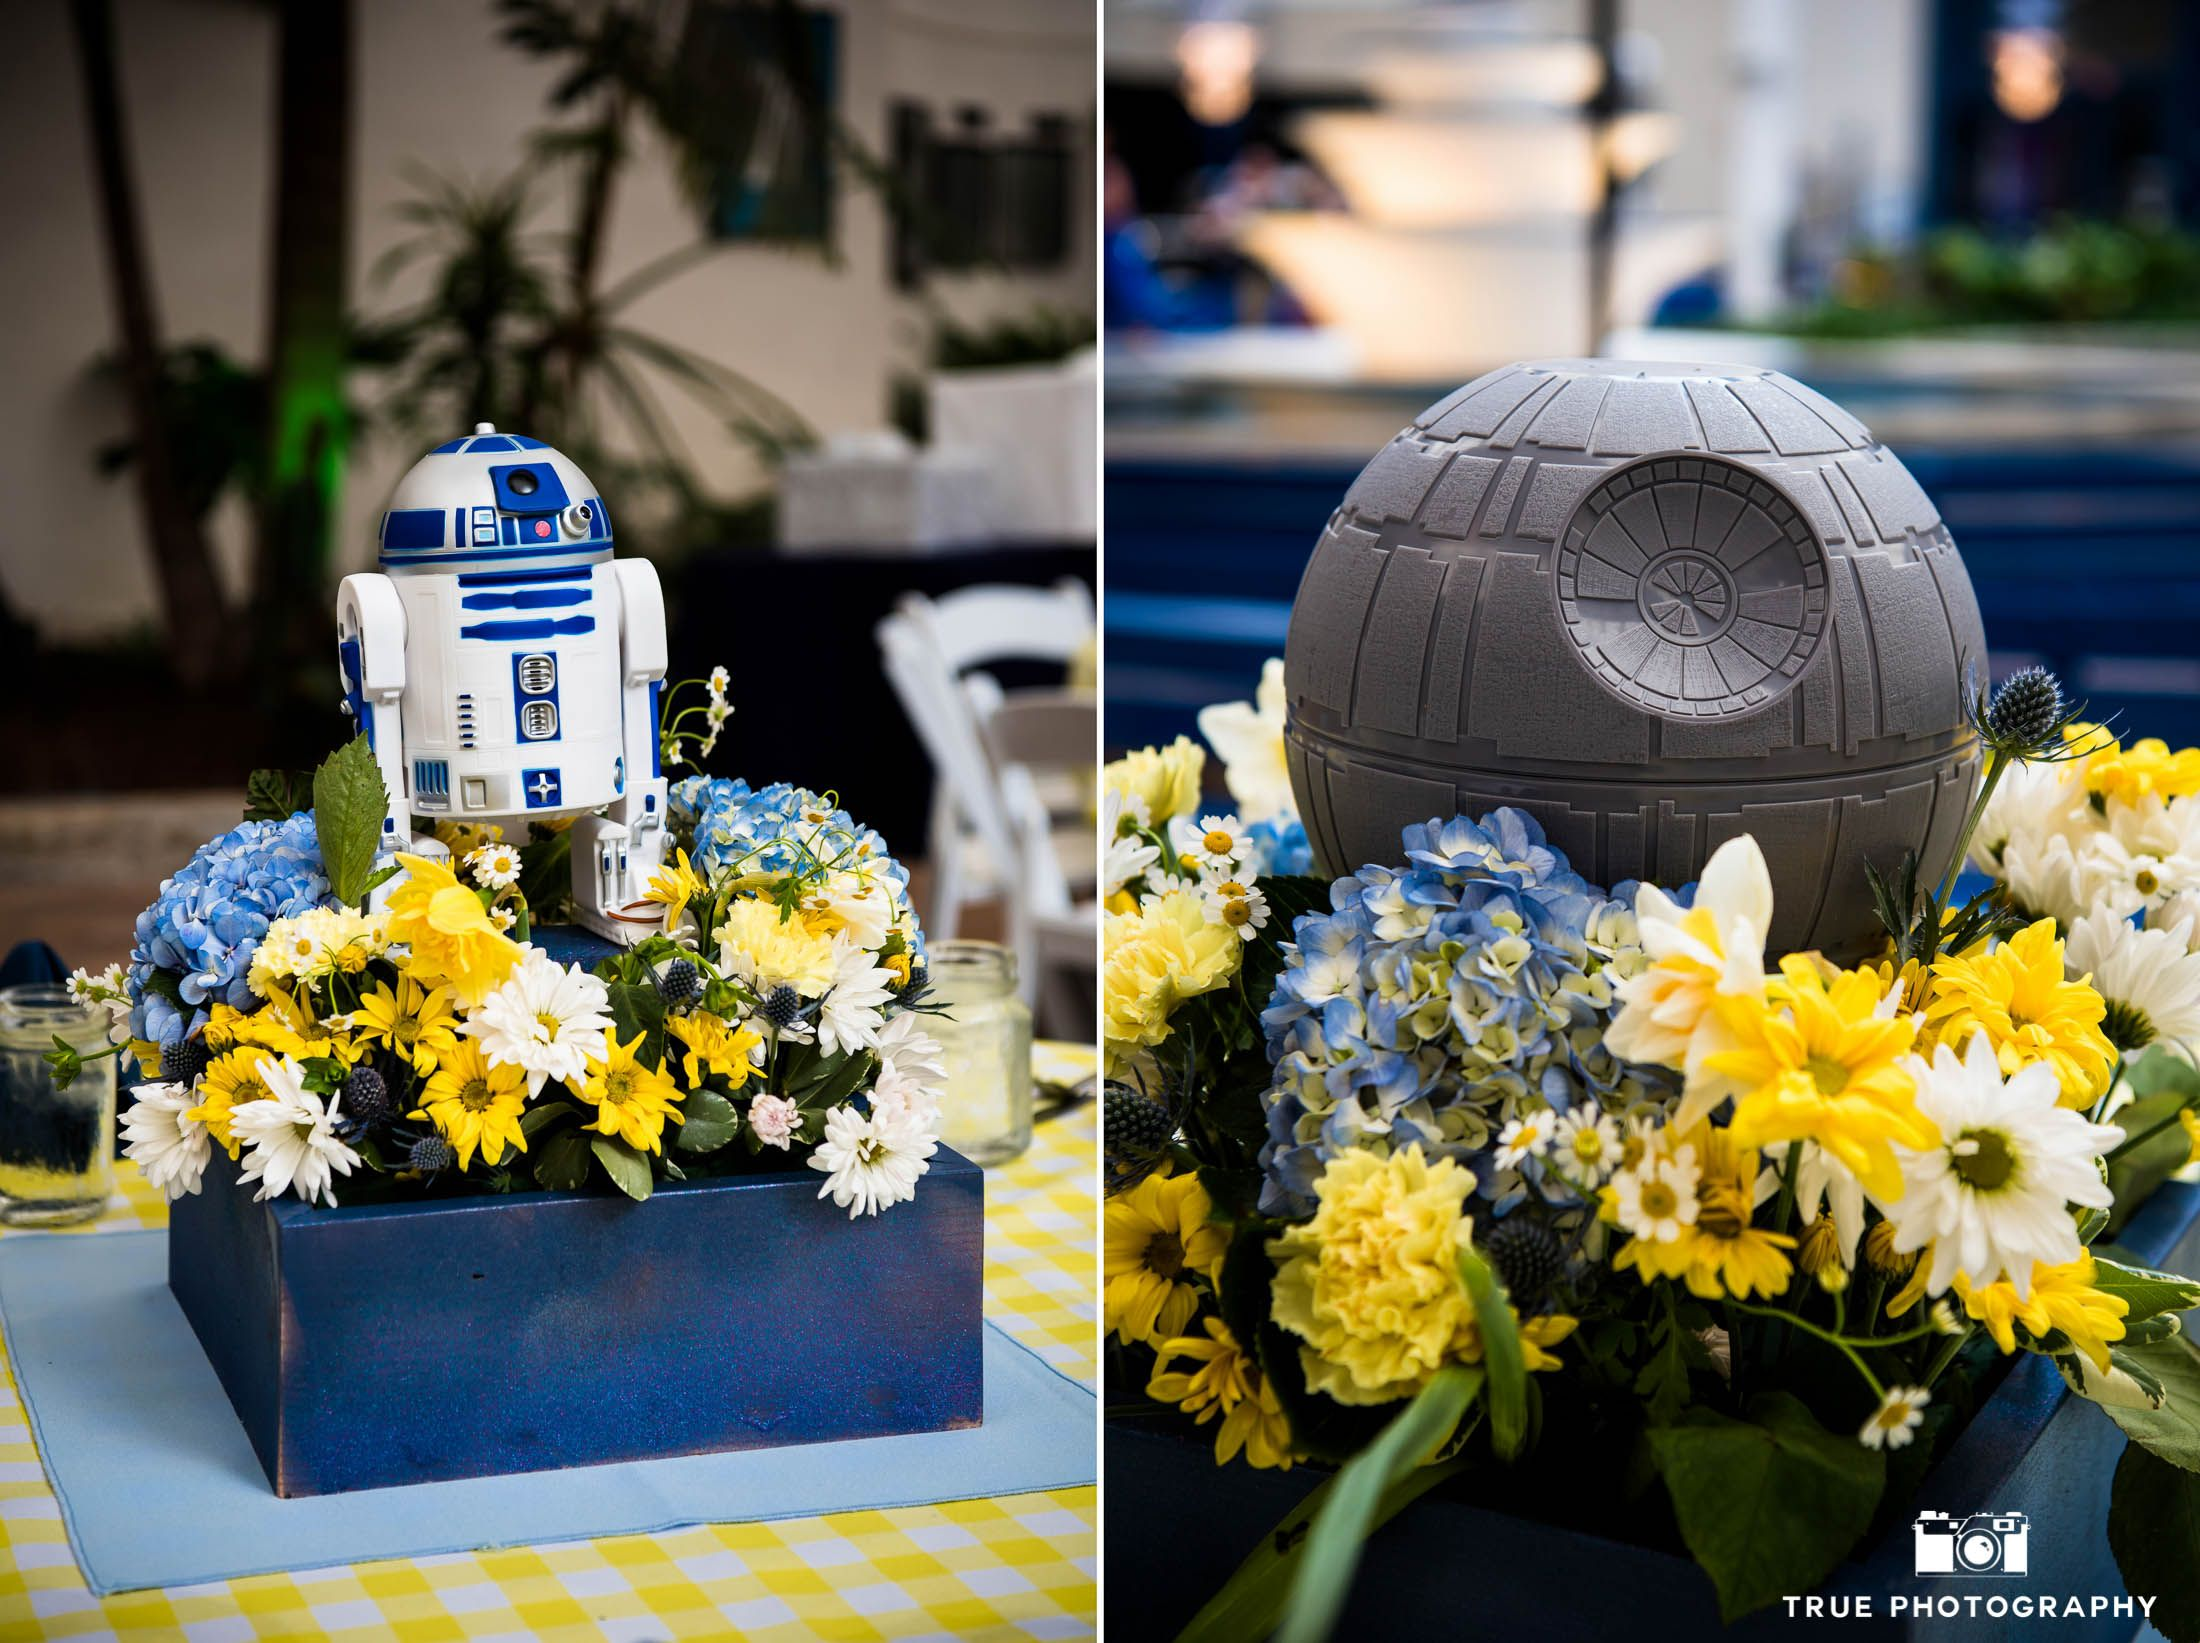 Star Wars Decorating Ideas Stars Wars Themed Centerpieces During Reception At Air And